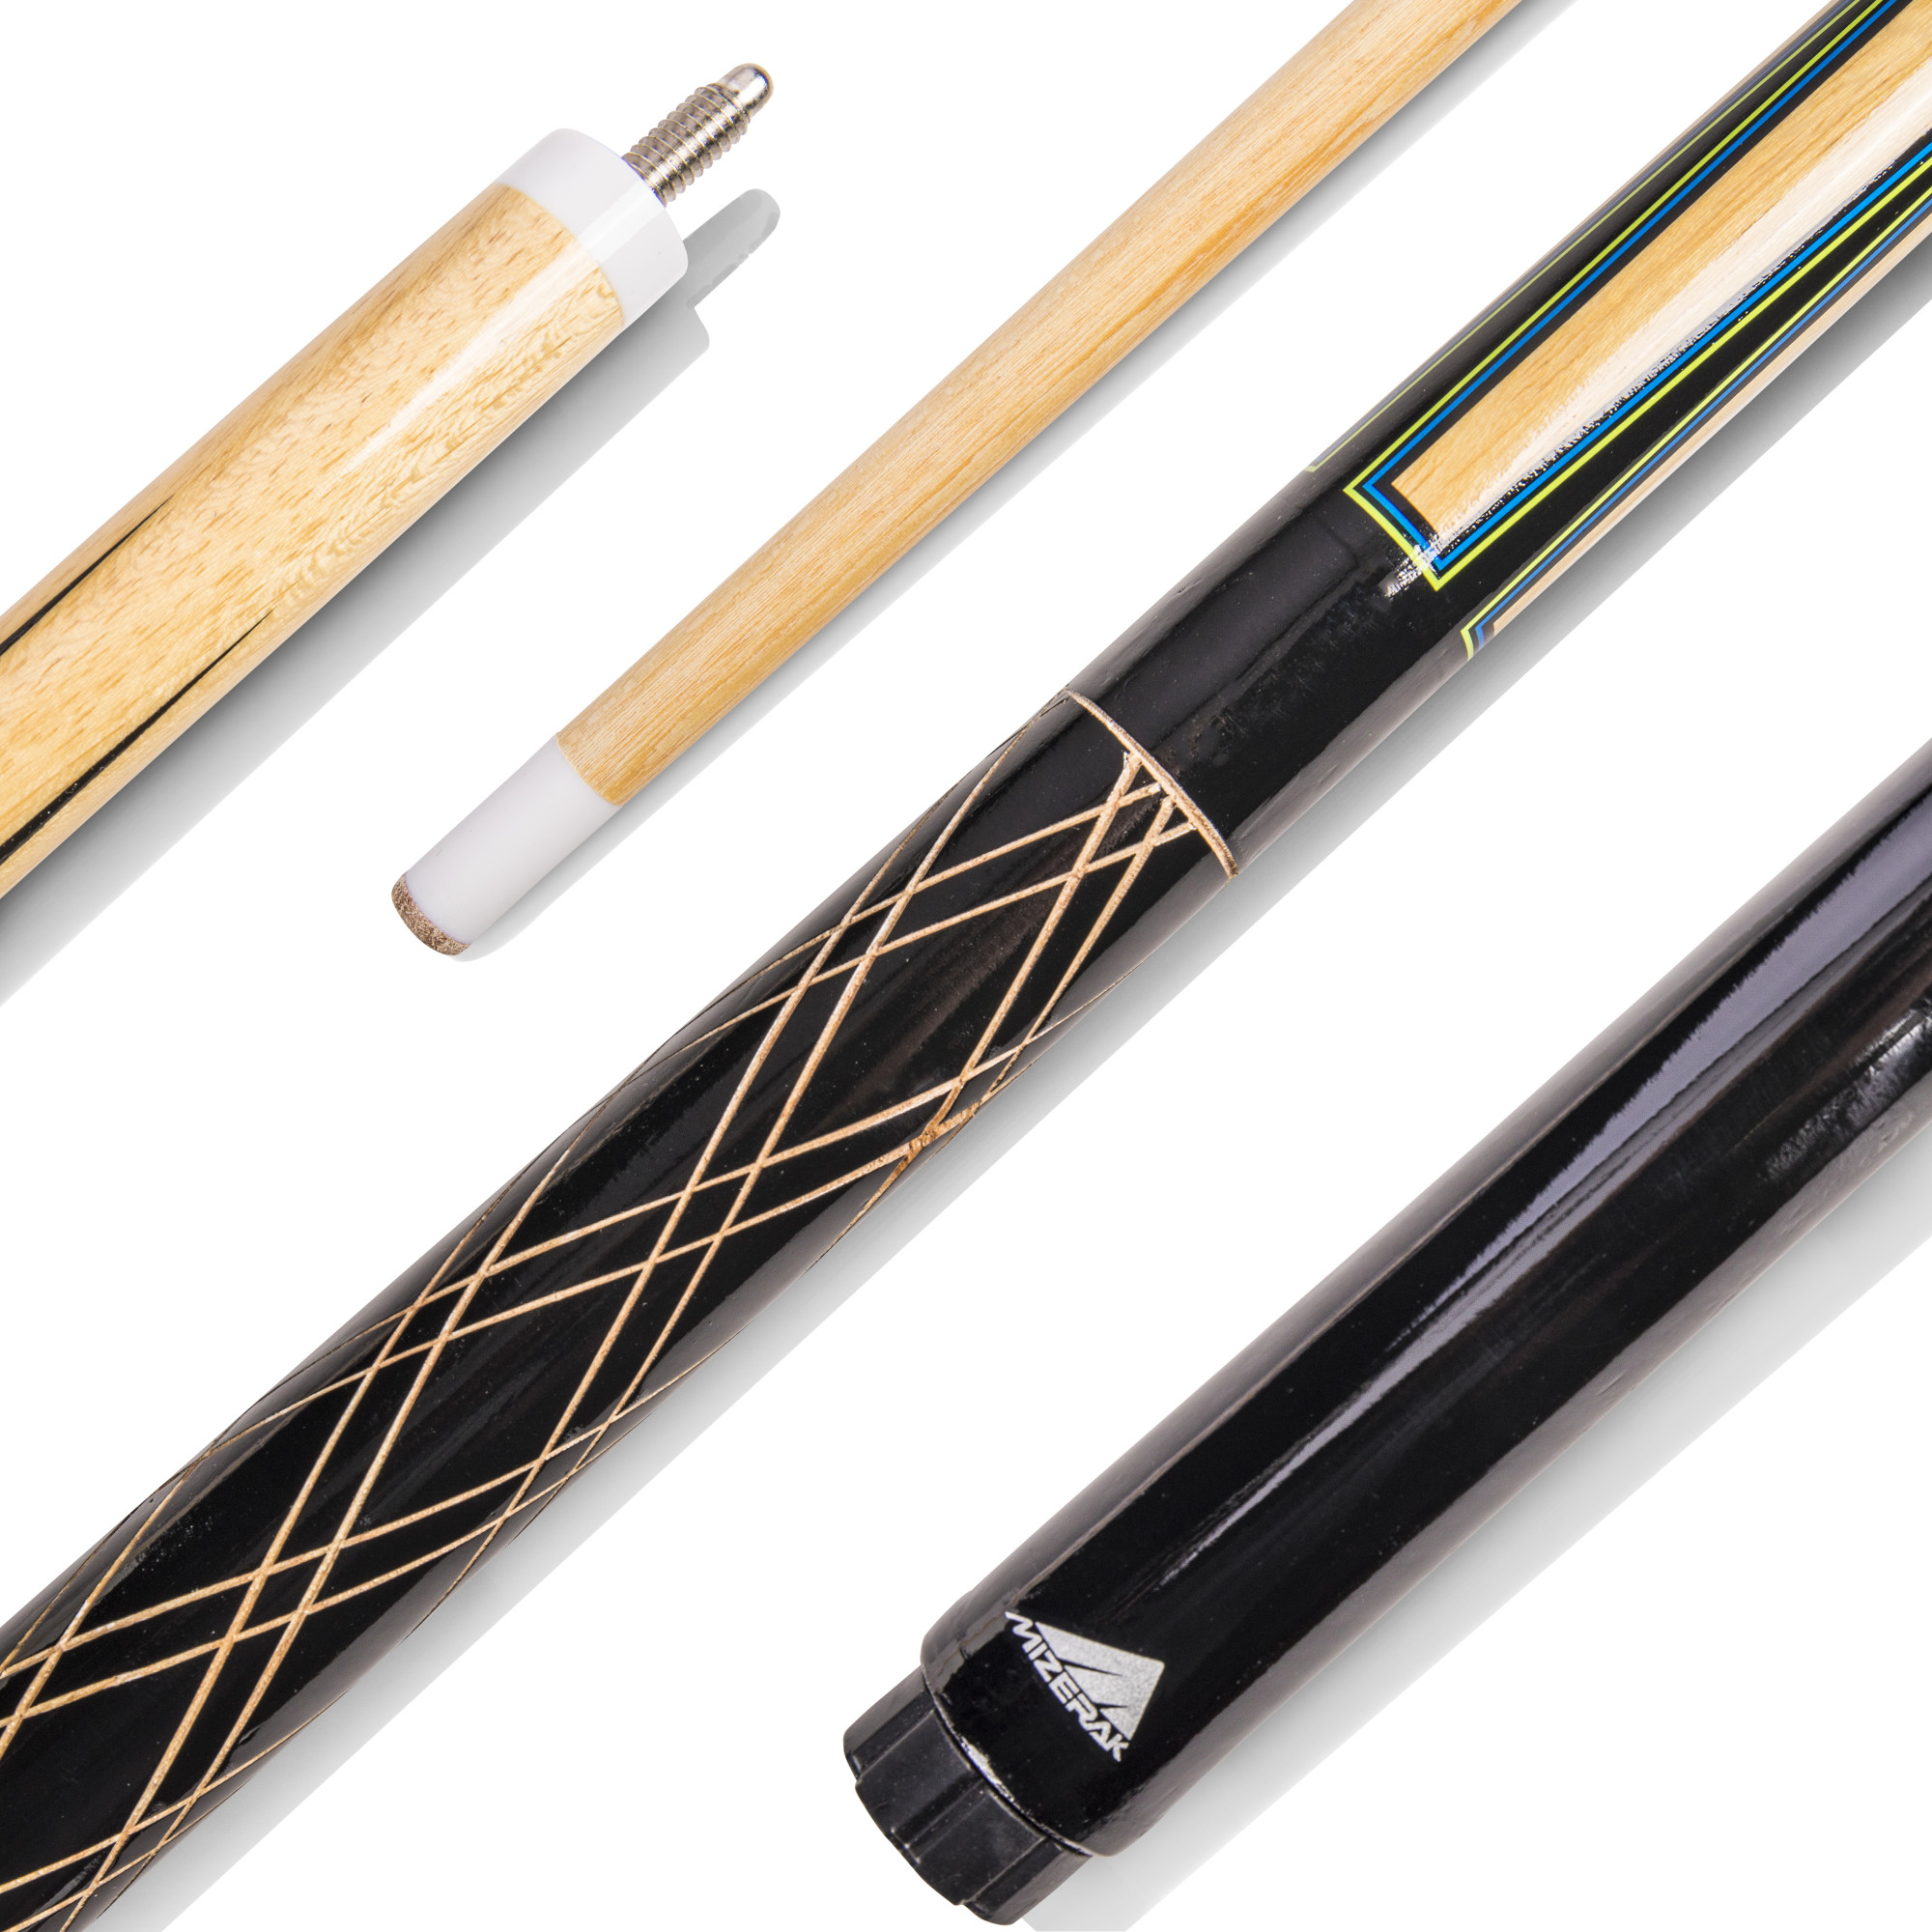 """Mizerak 57"""" House Cue (2-Piece) with 12mm Ferrule with Leather Tip, Hardwood Construction and High Gloss Finish"""